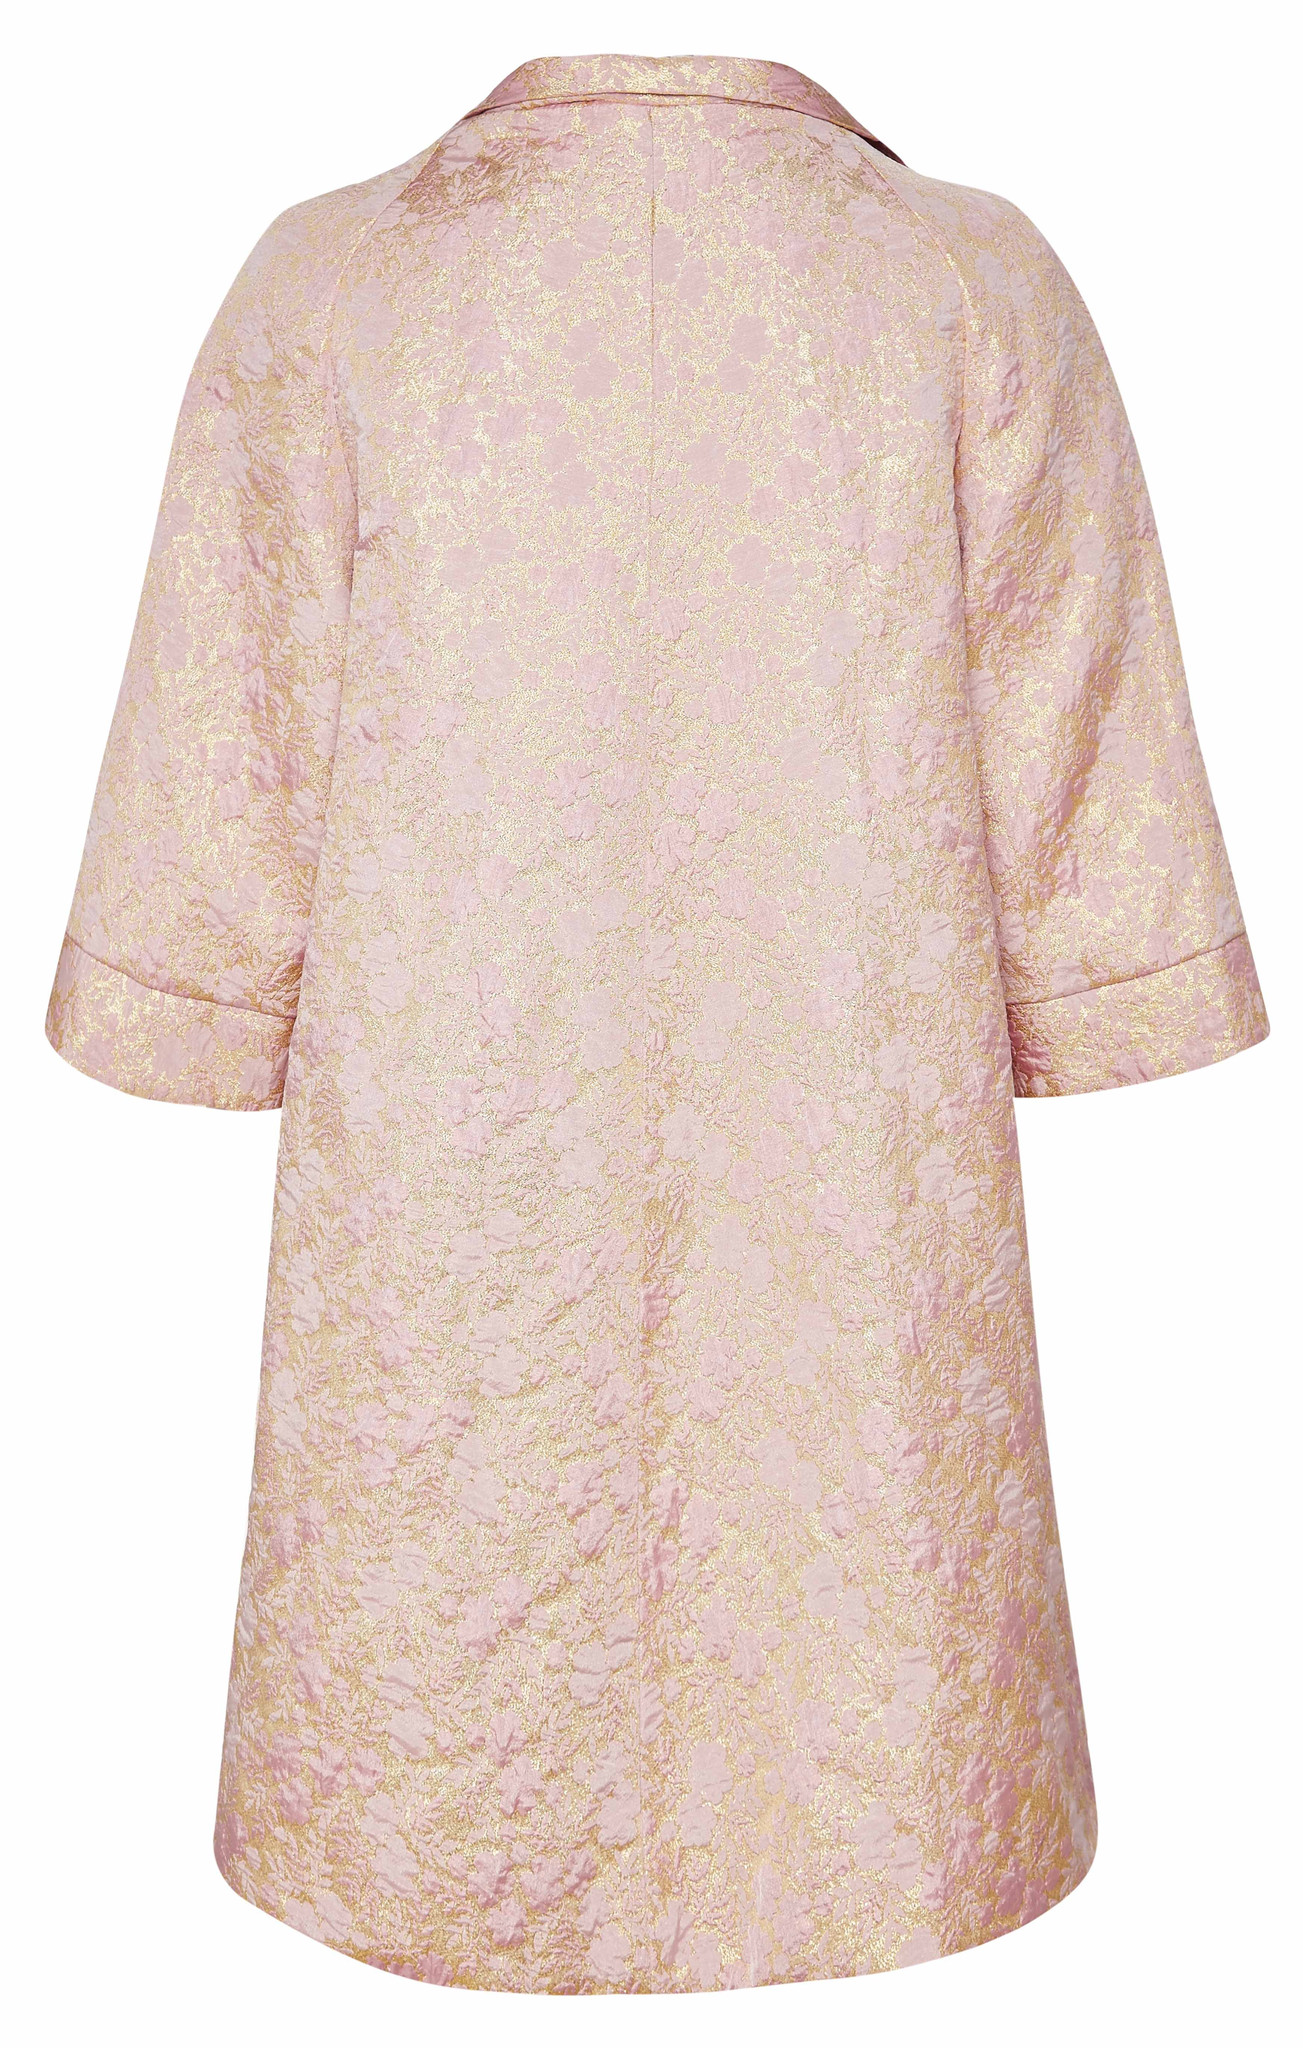 GATOR COAT • PINK BROCADE - House Of Cannon